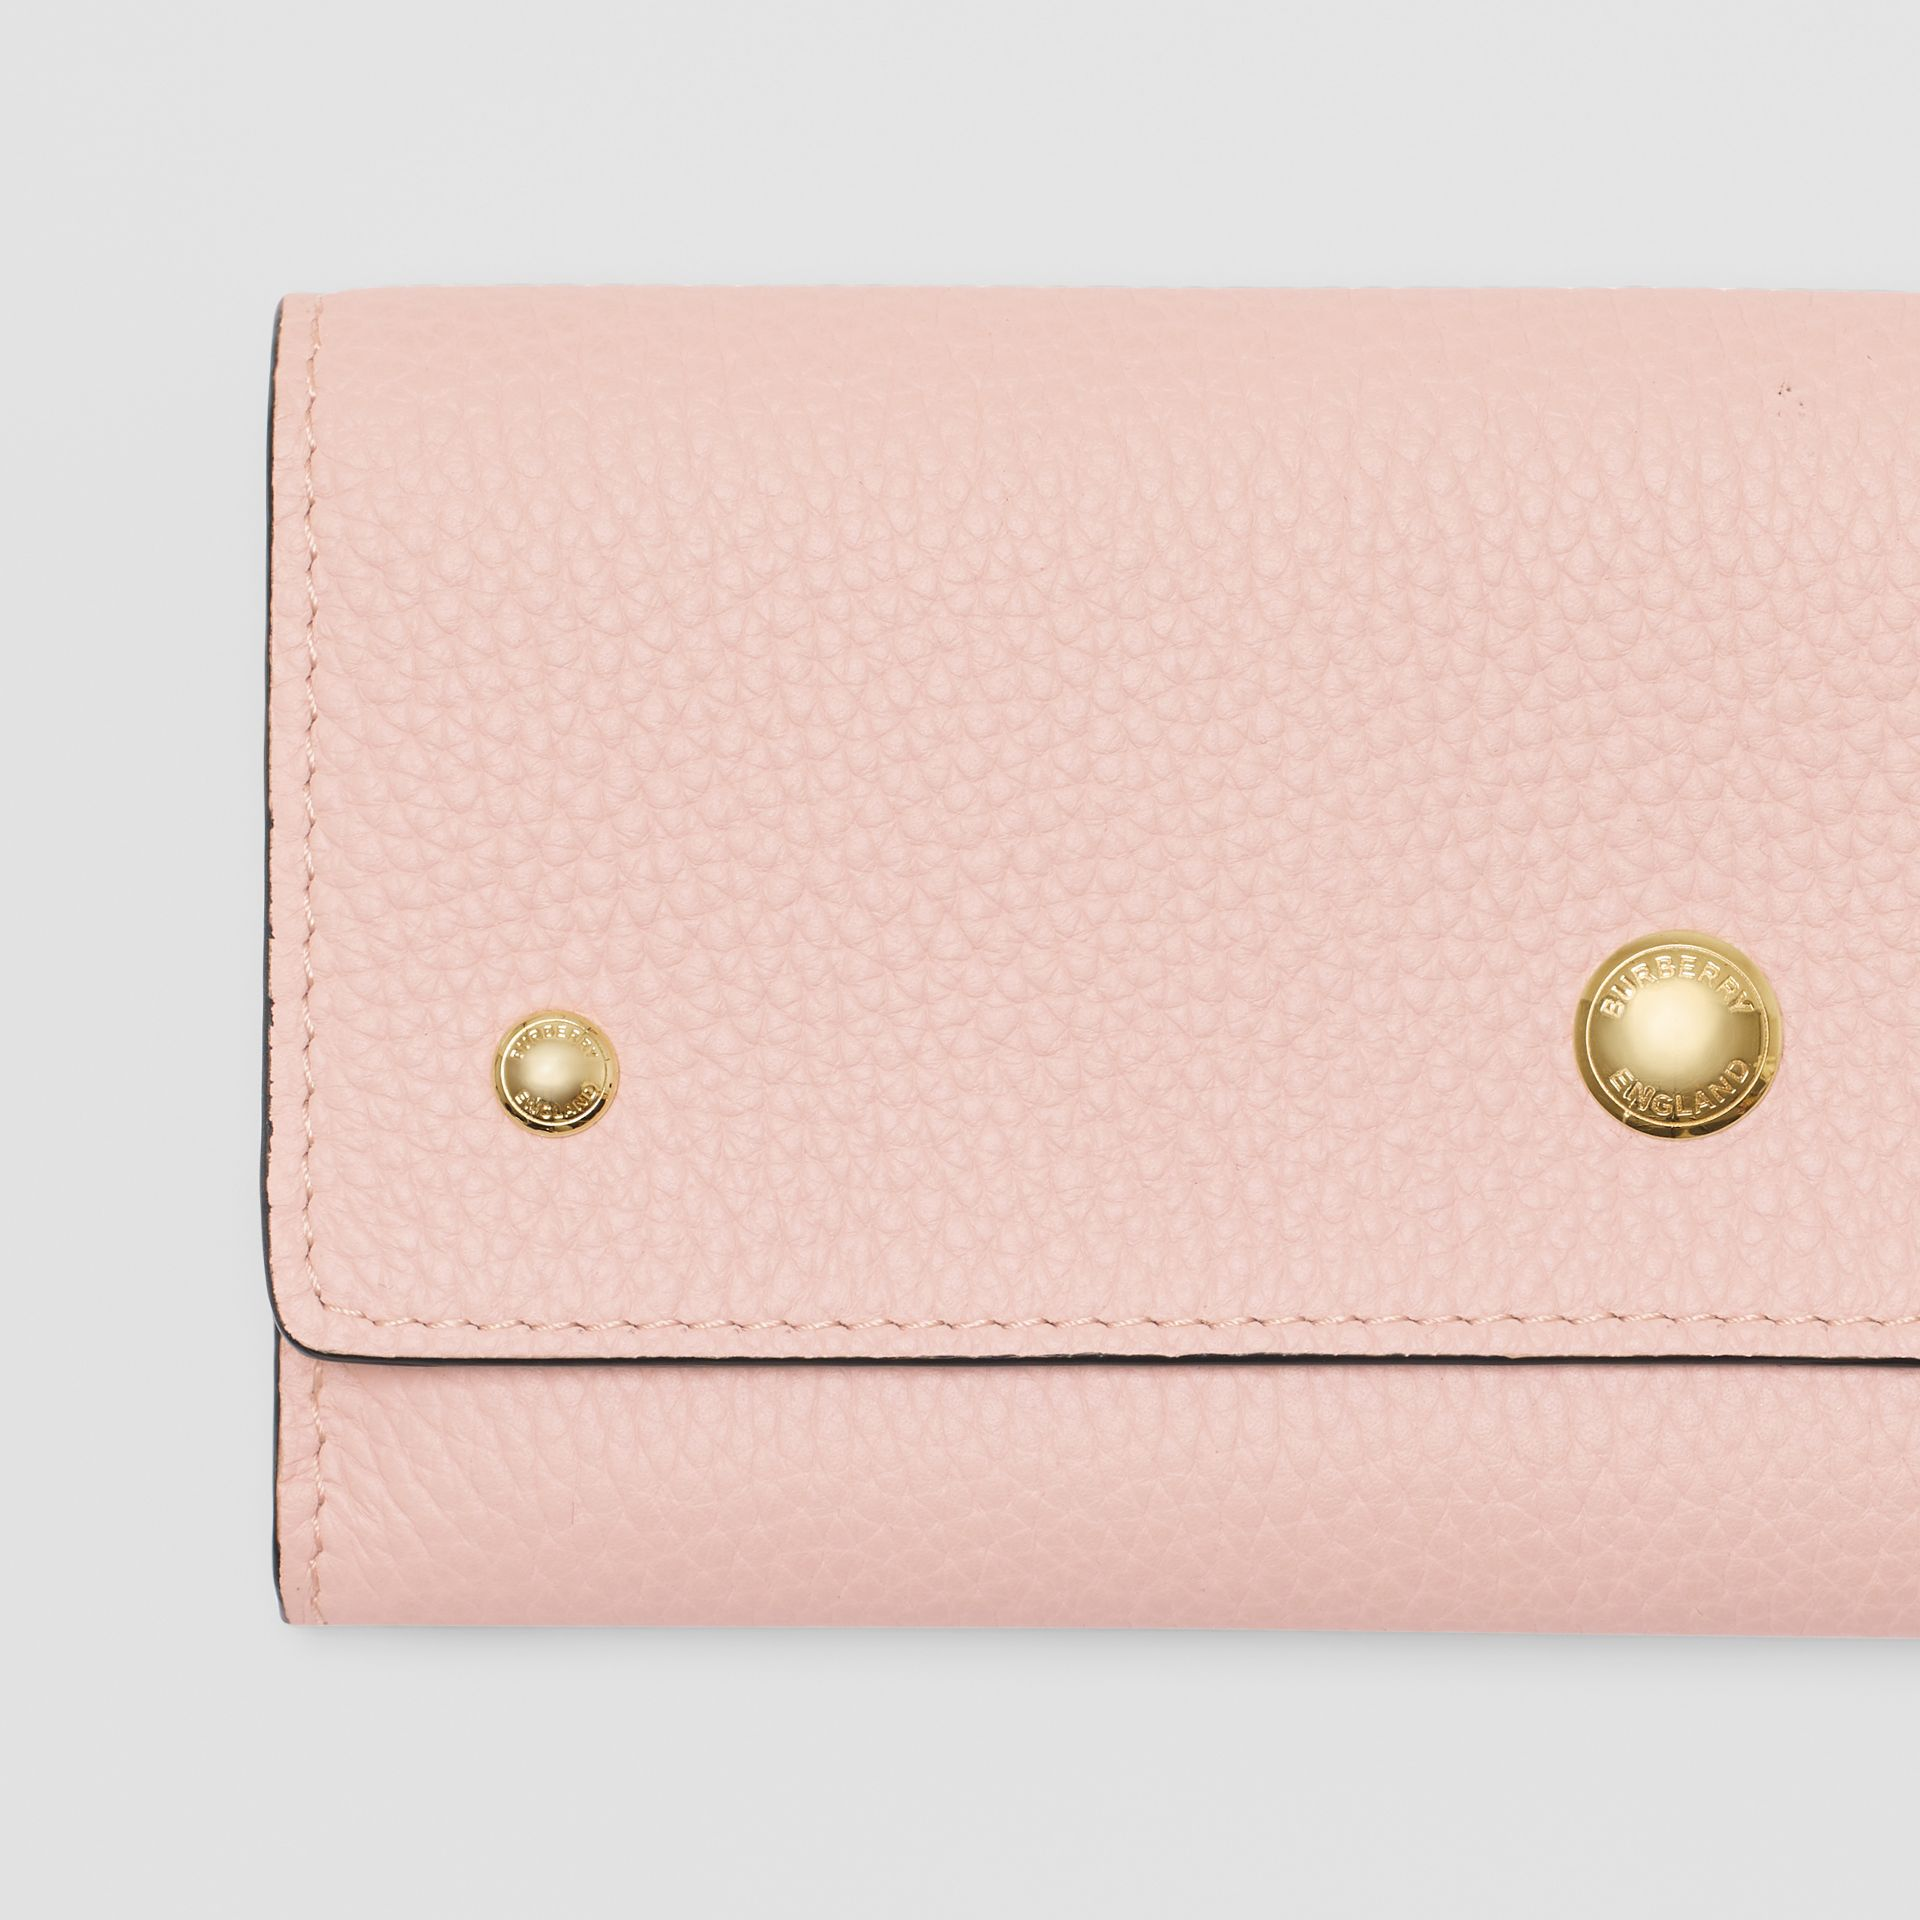 Grainy Leather Continental Wallet in Pale Ash Rose - Women | Burberry - gallery image 1